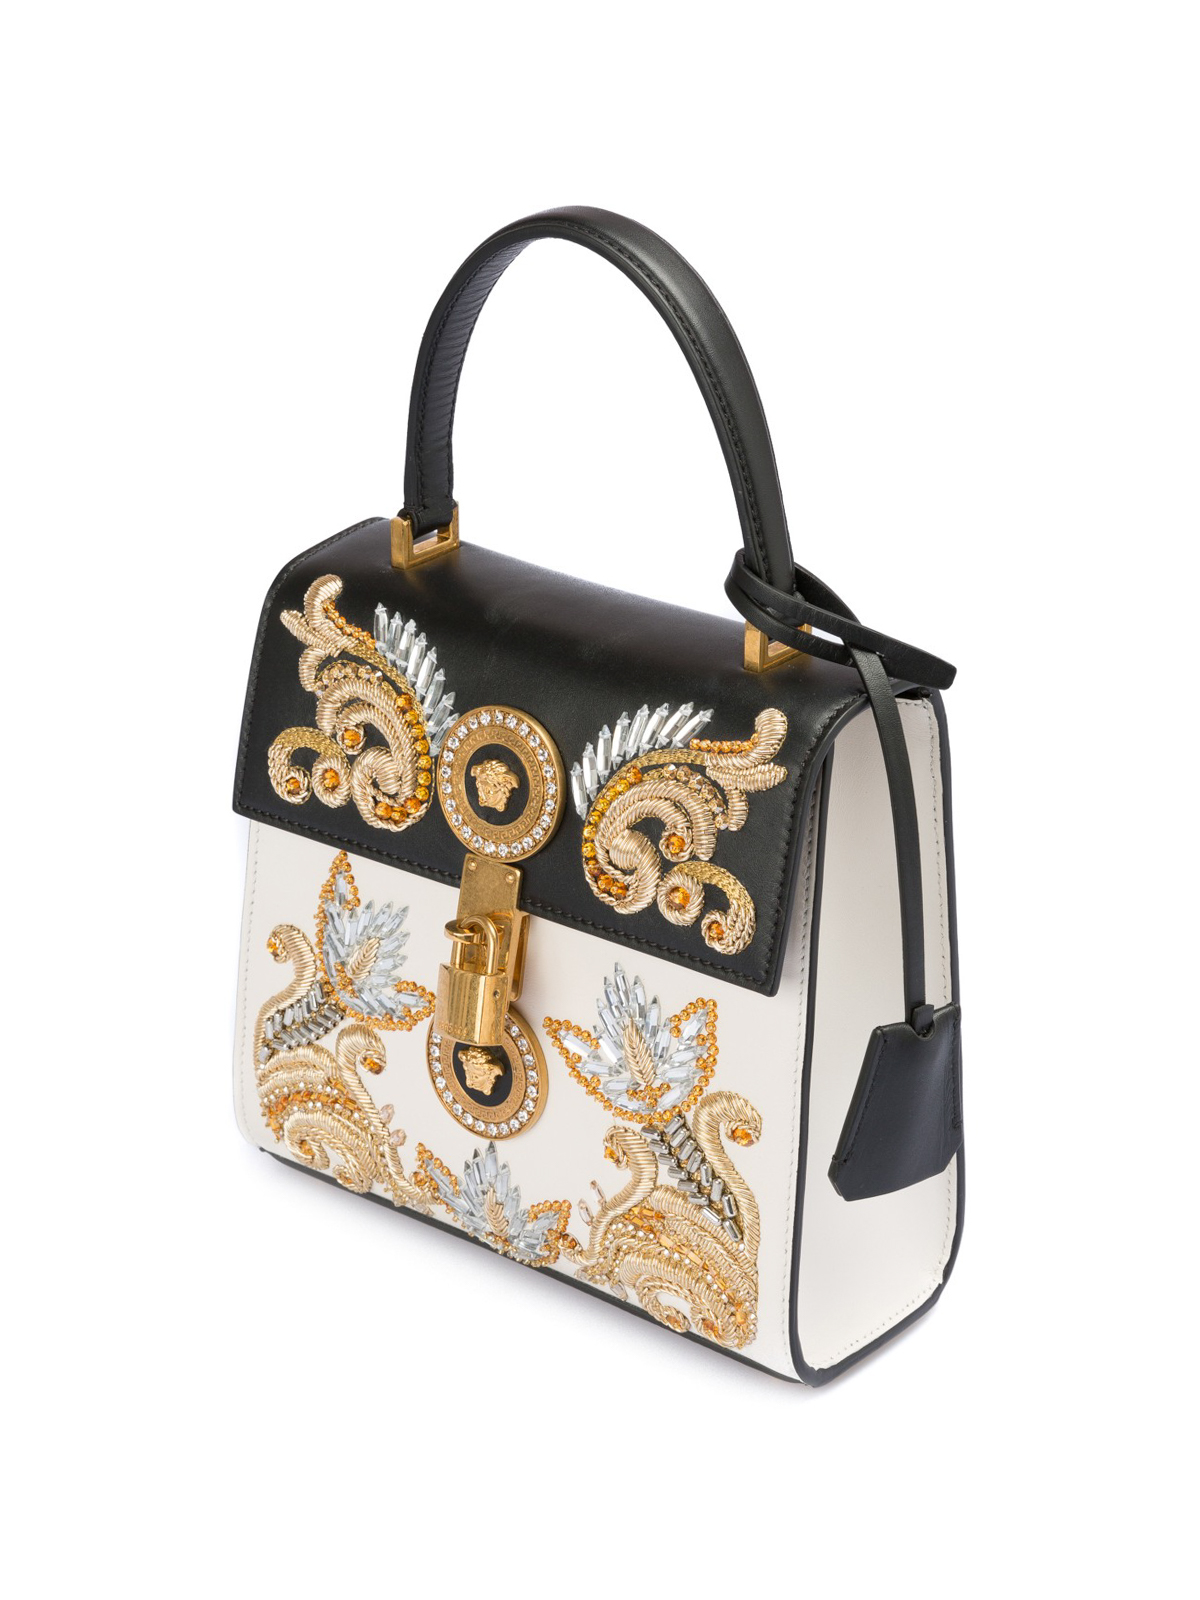 99cbb458e3 Versace - Baroque embroidered leather bag - cross body bags ...